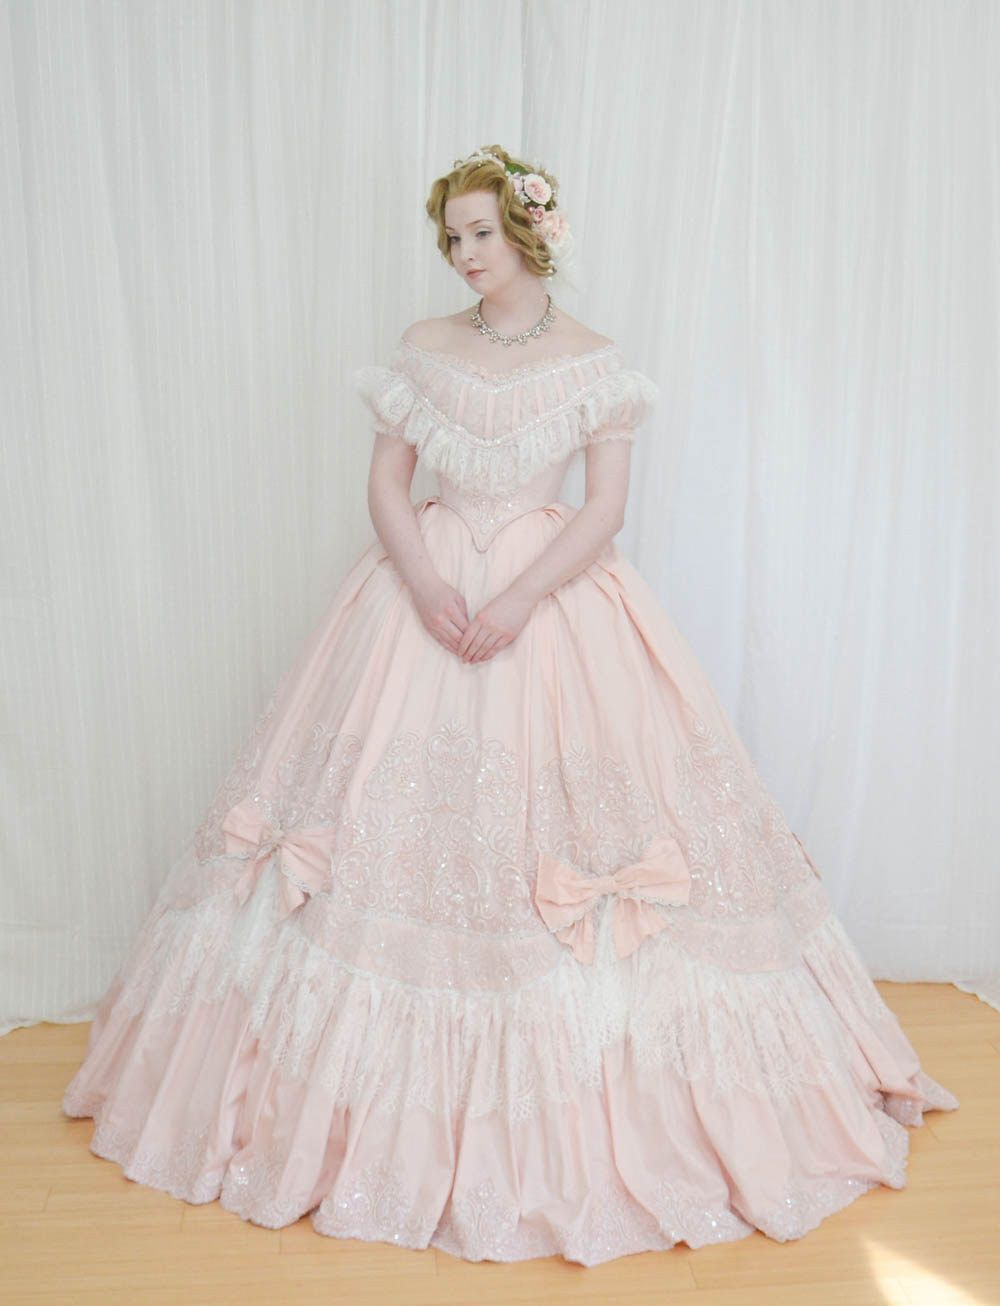 Victorian Ball Gown Doxiequeen1 Tumblr Com Victorian Ball Gowns Ball Gowns Southern Belle Dress